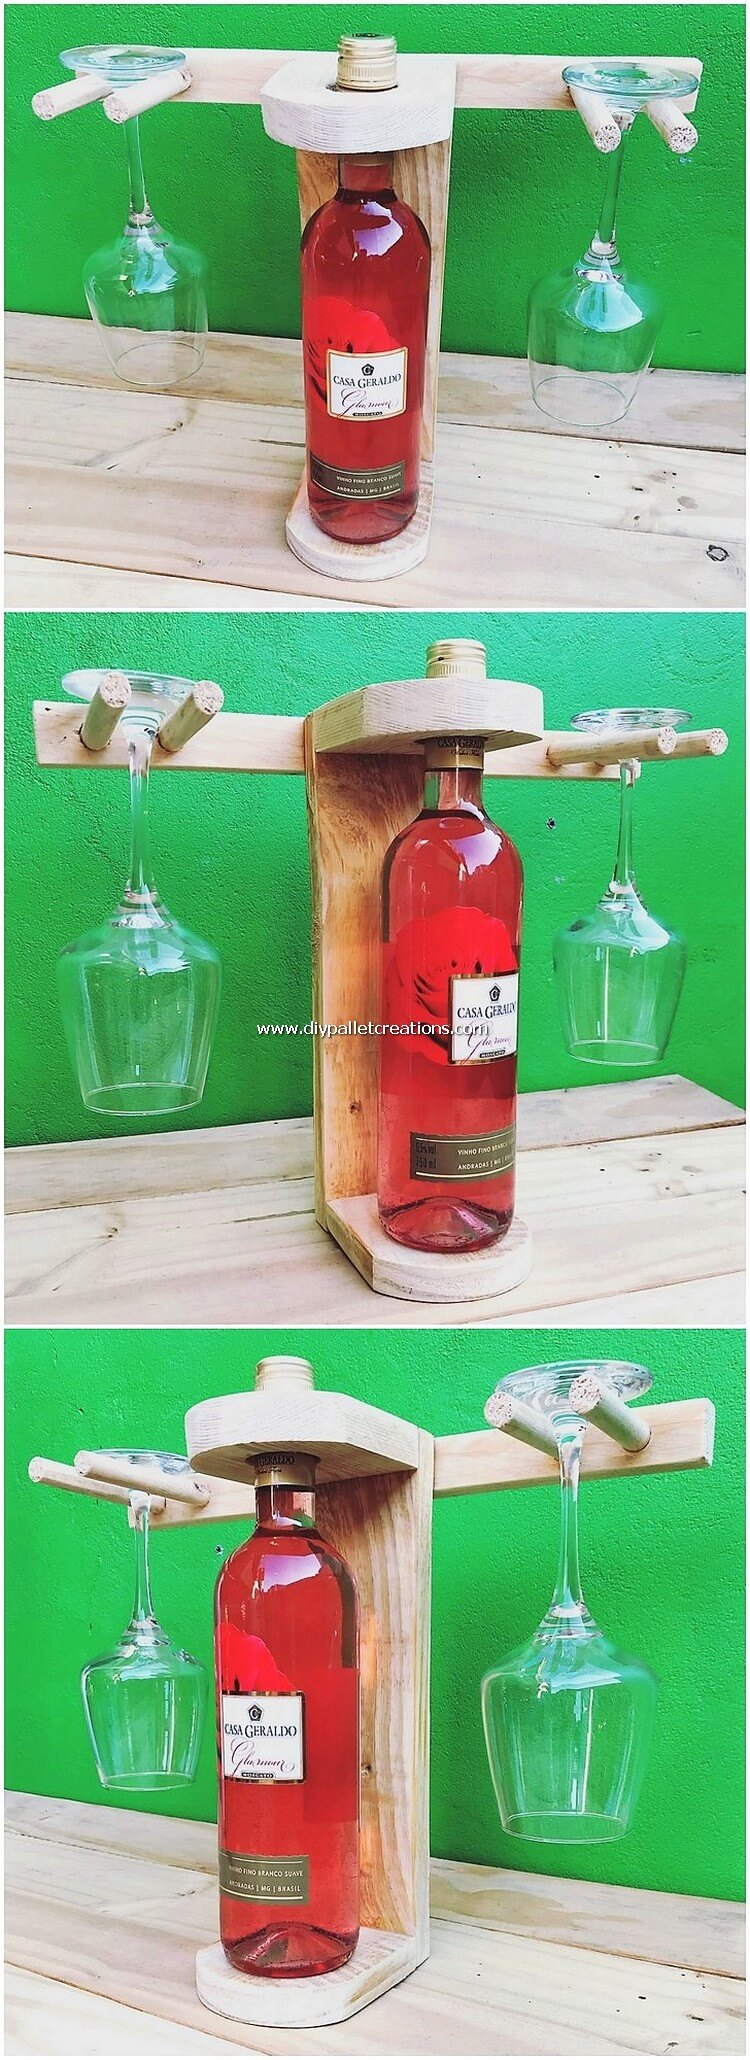 Pallet Wine Bottle Rack and Glass Holders